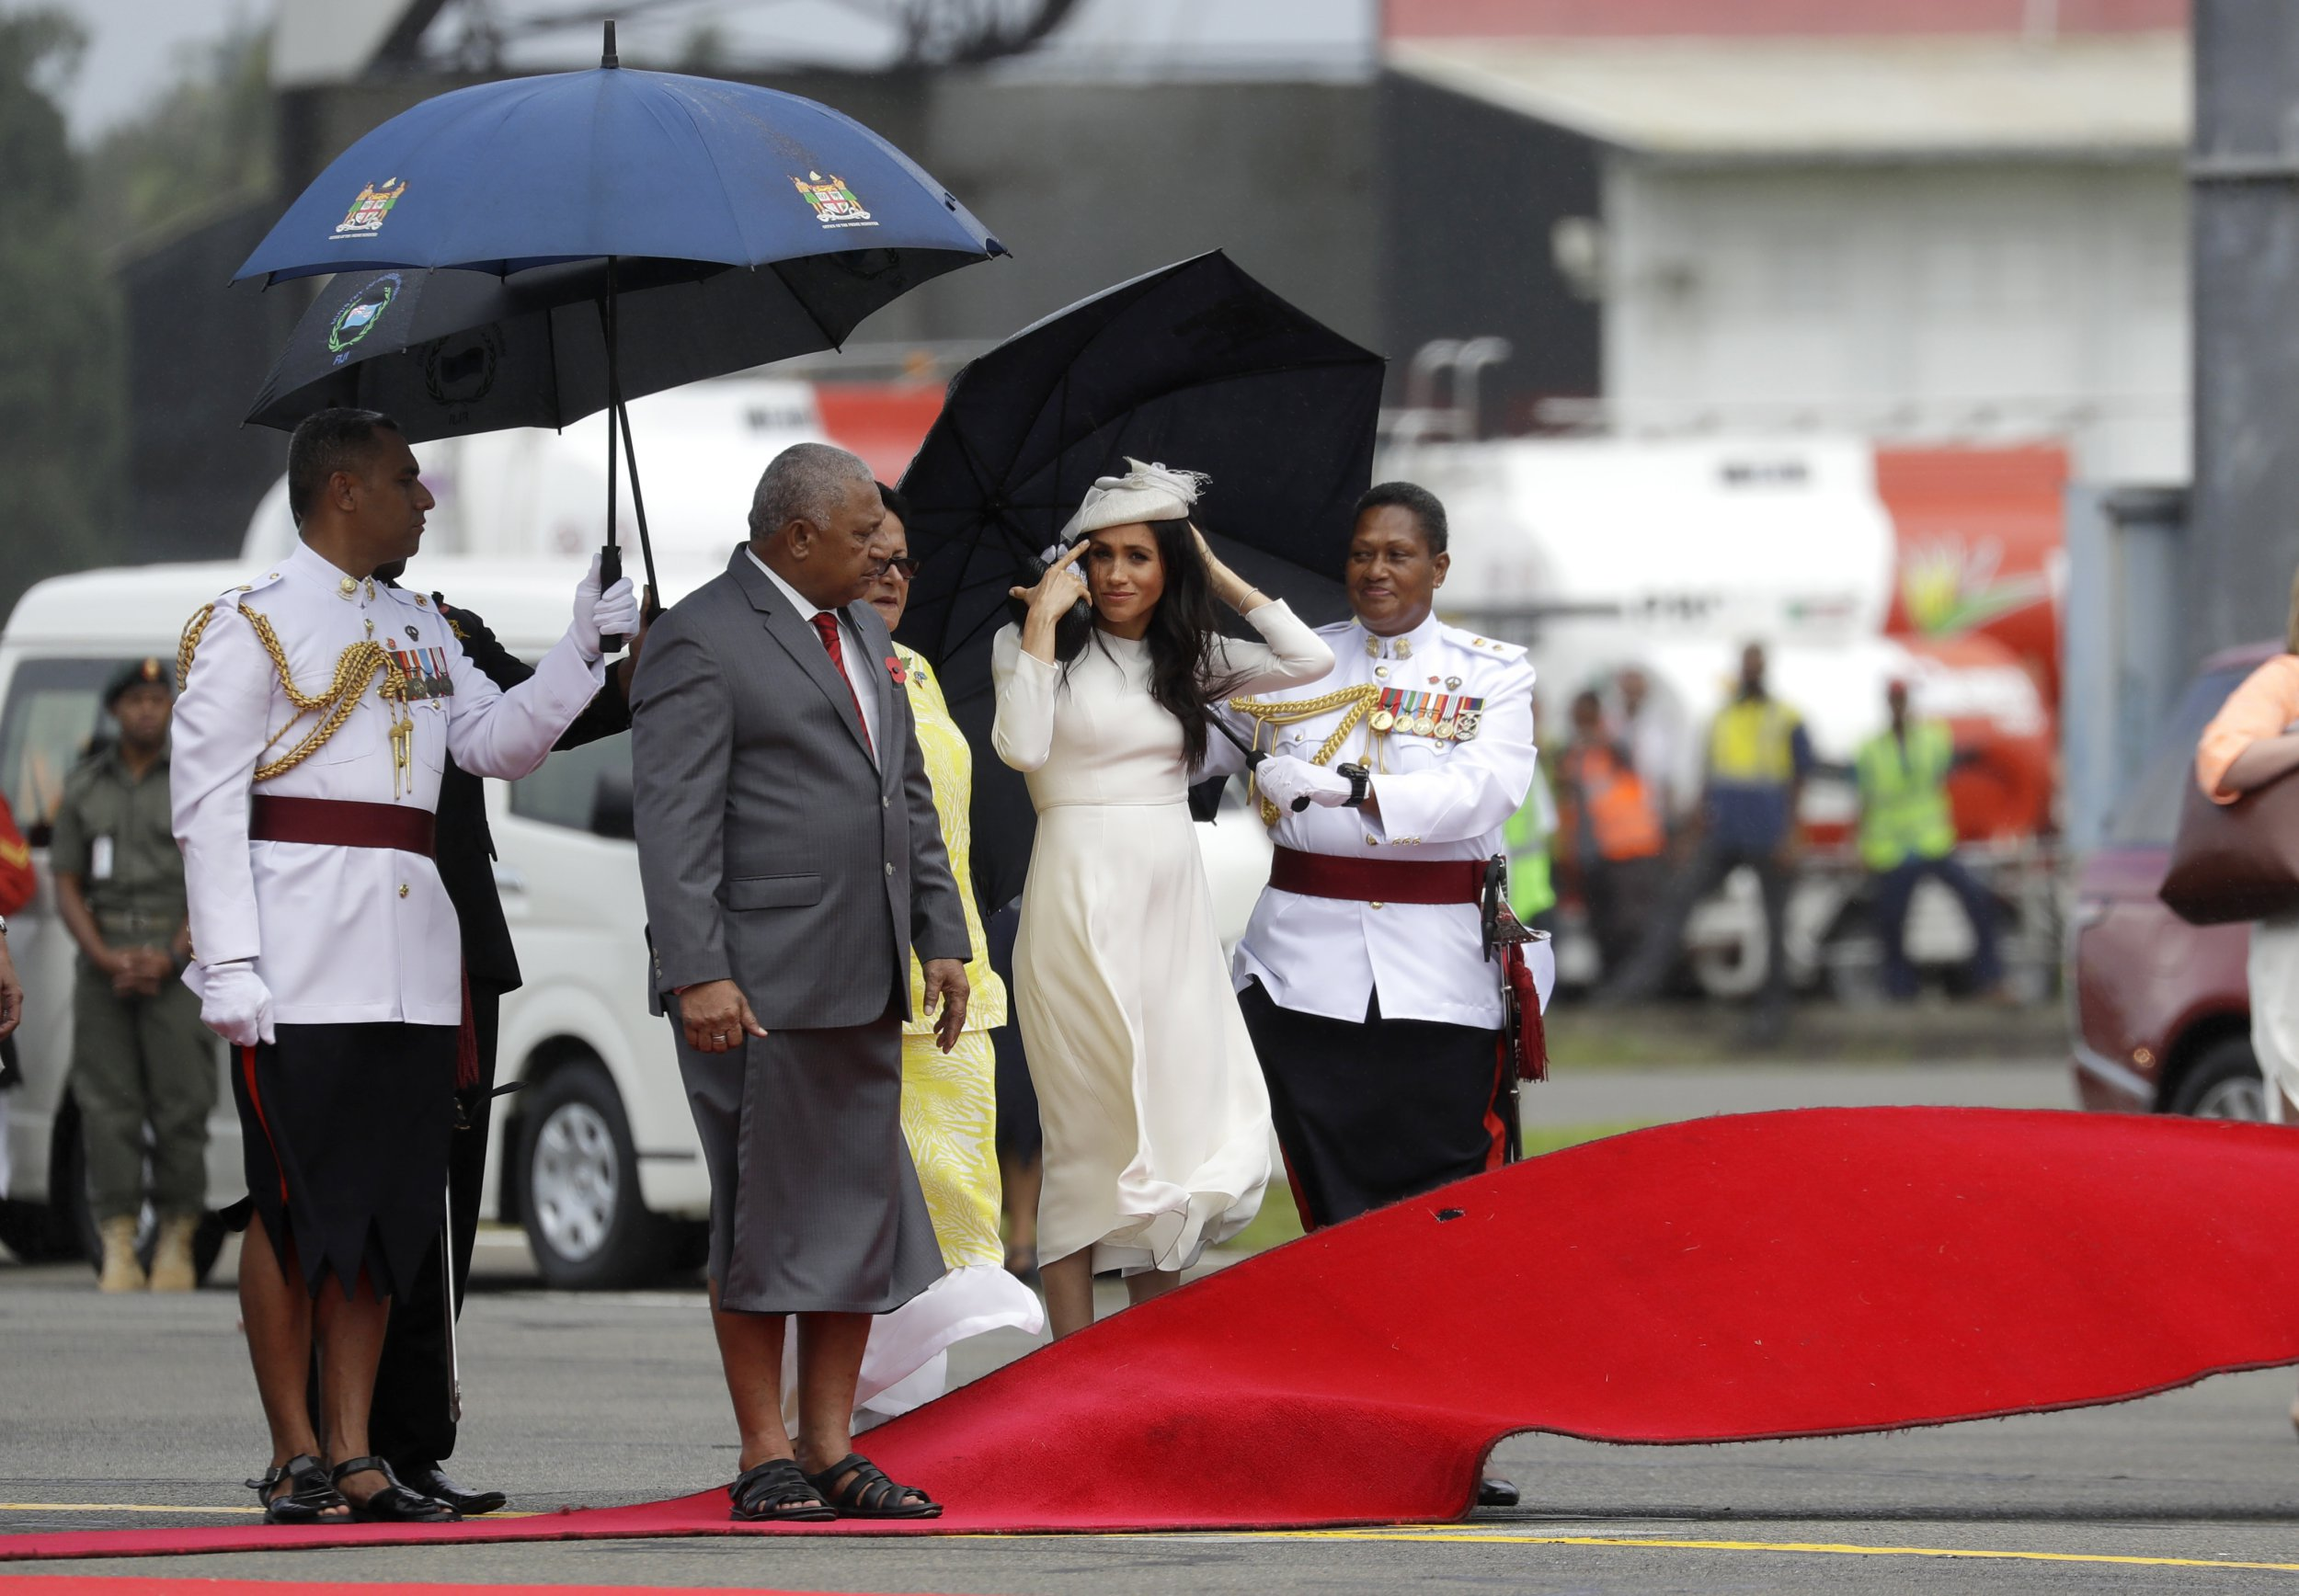 Meghan, Duchess of Sussex waits with Fiji Prime Minister Frank Bainimarama, left, as a red carpet is laid during a welcome ceremony in Suva, Fiji, Tuesday, Oct. 23, 2018. Britain's Prince Harry and his wife Meghan are on day eight of their 16-day tour of Australia and the South Pacific.(AP Photo/Kirsty Wigglesworth,Pool)